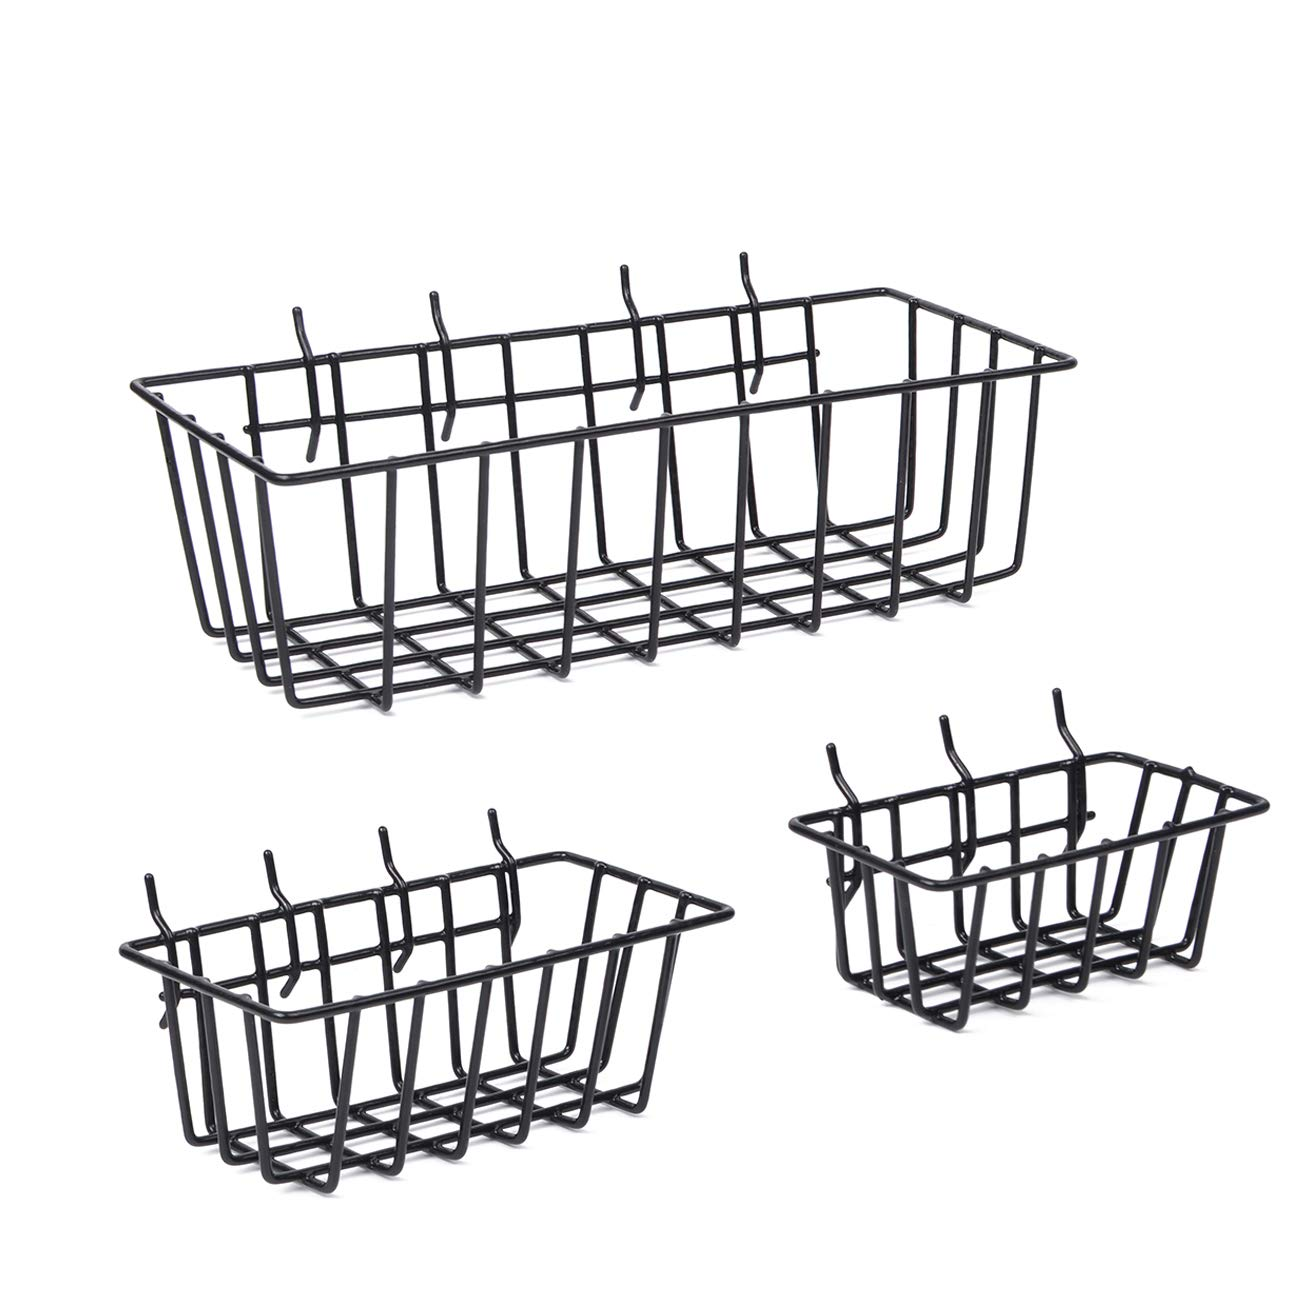 "3 Pack Pegboard Wall Mount Basket Hardware Wire Pluggable Tool Organization Set for Slatwall, Gridwall fits 1/4"", 1/8"" Peg Board by KINWELL (Image #1)"